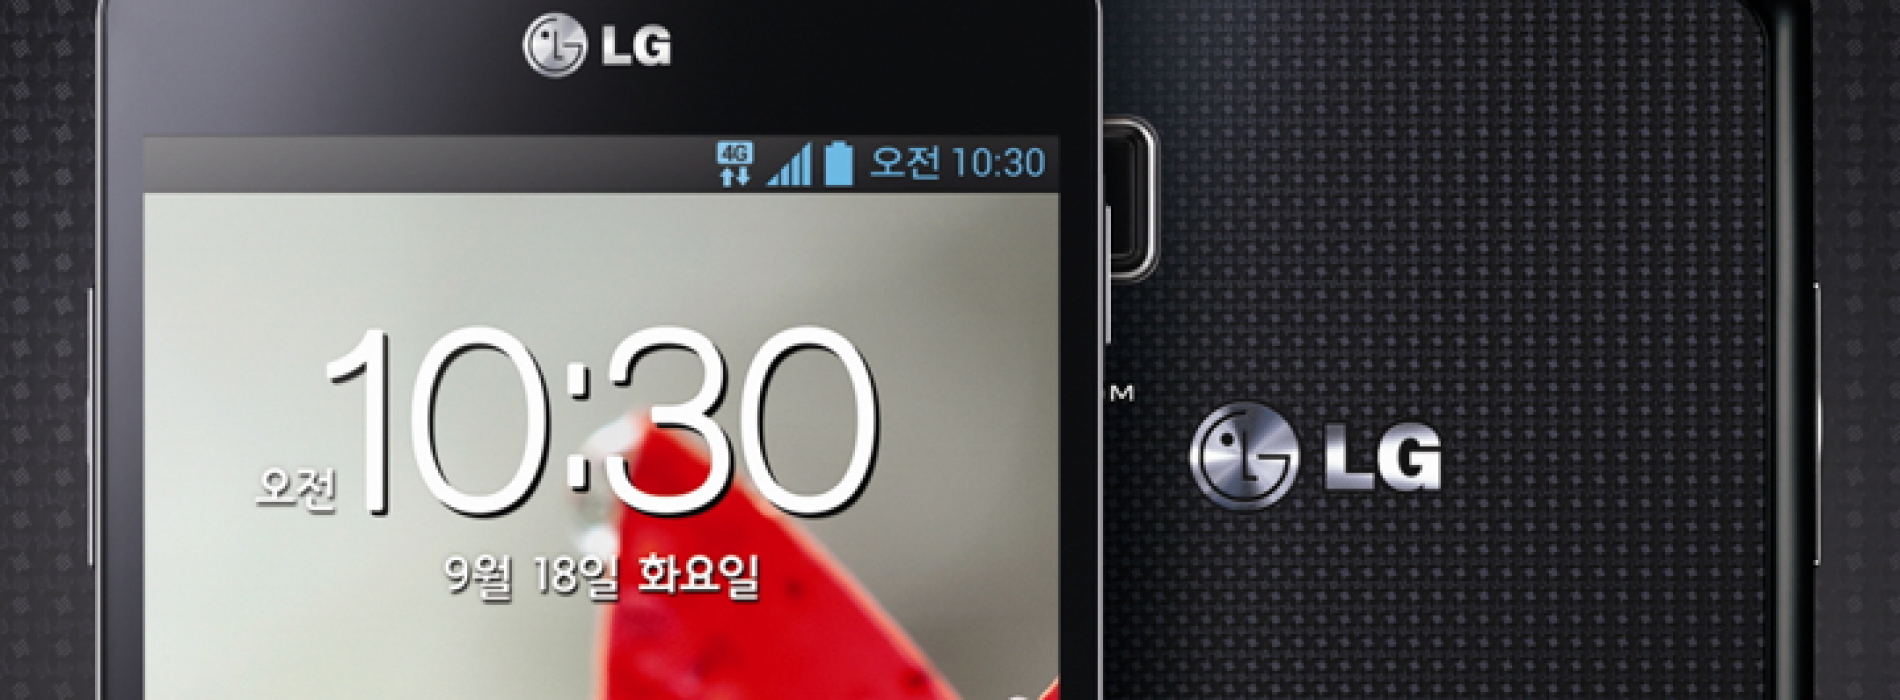 Might LG announce U.S. details for Optimus G on September 18?